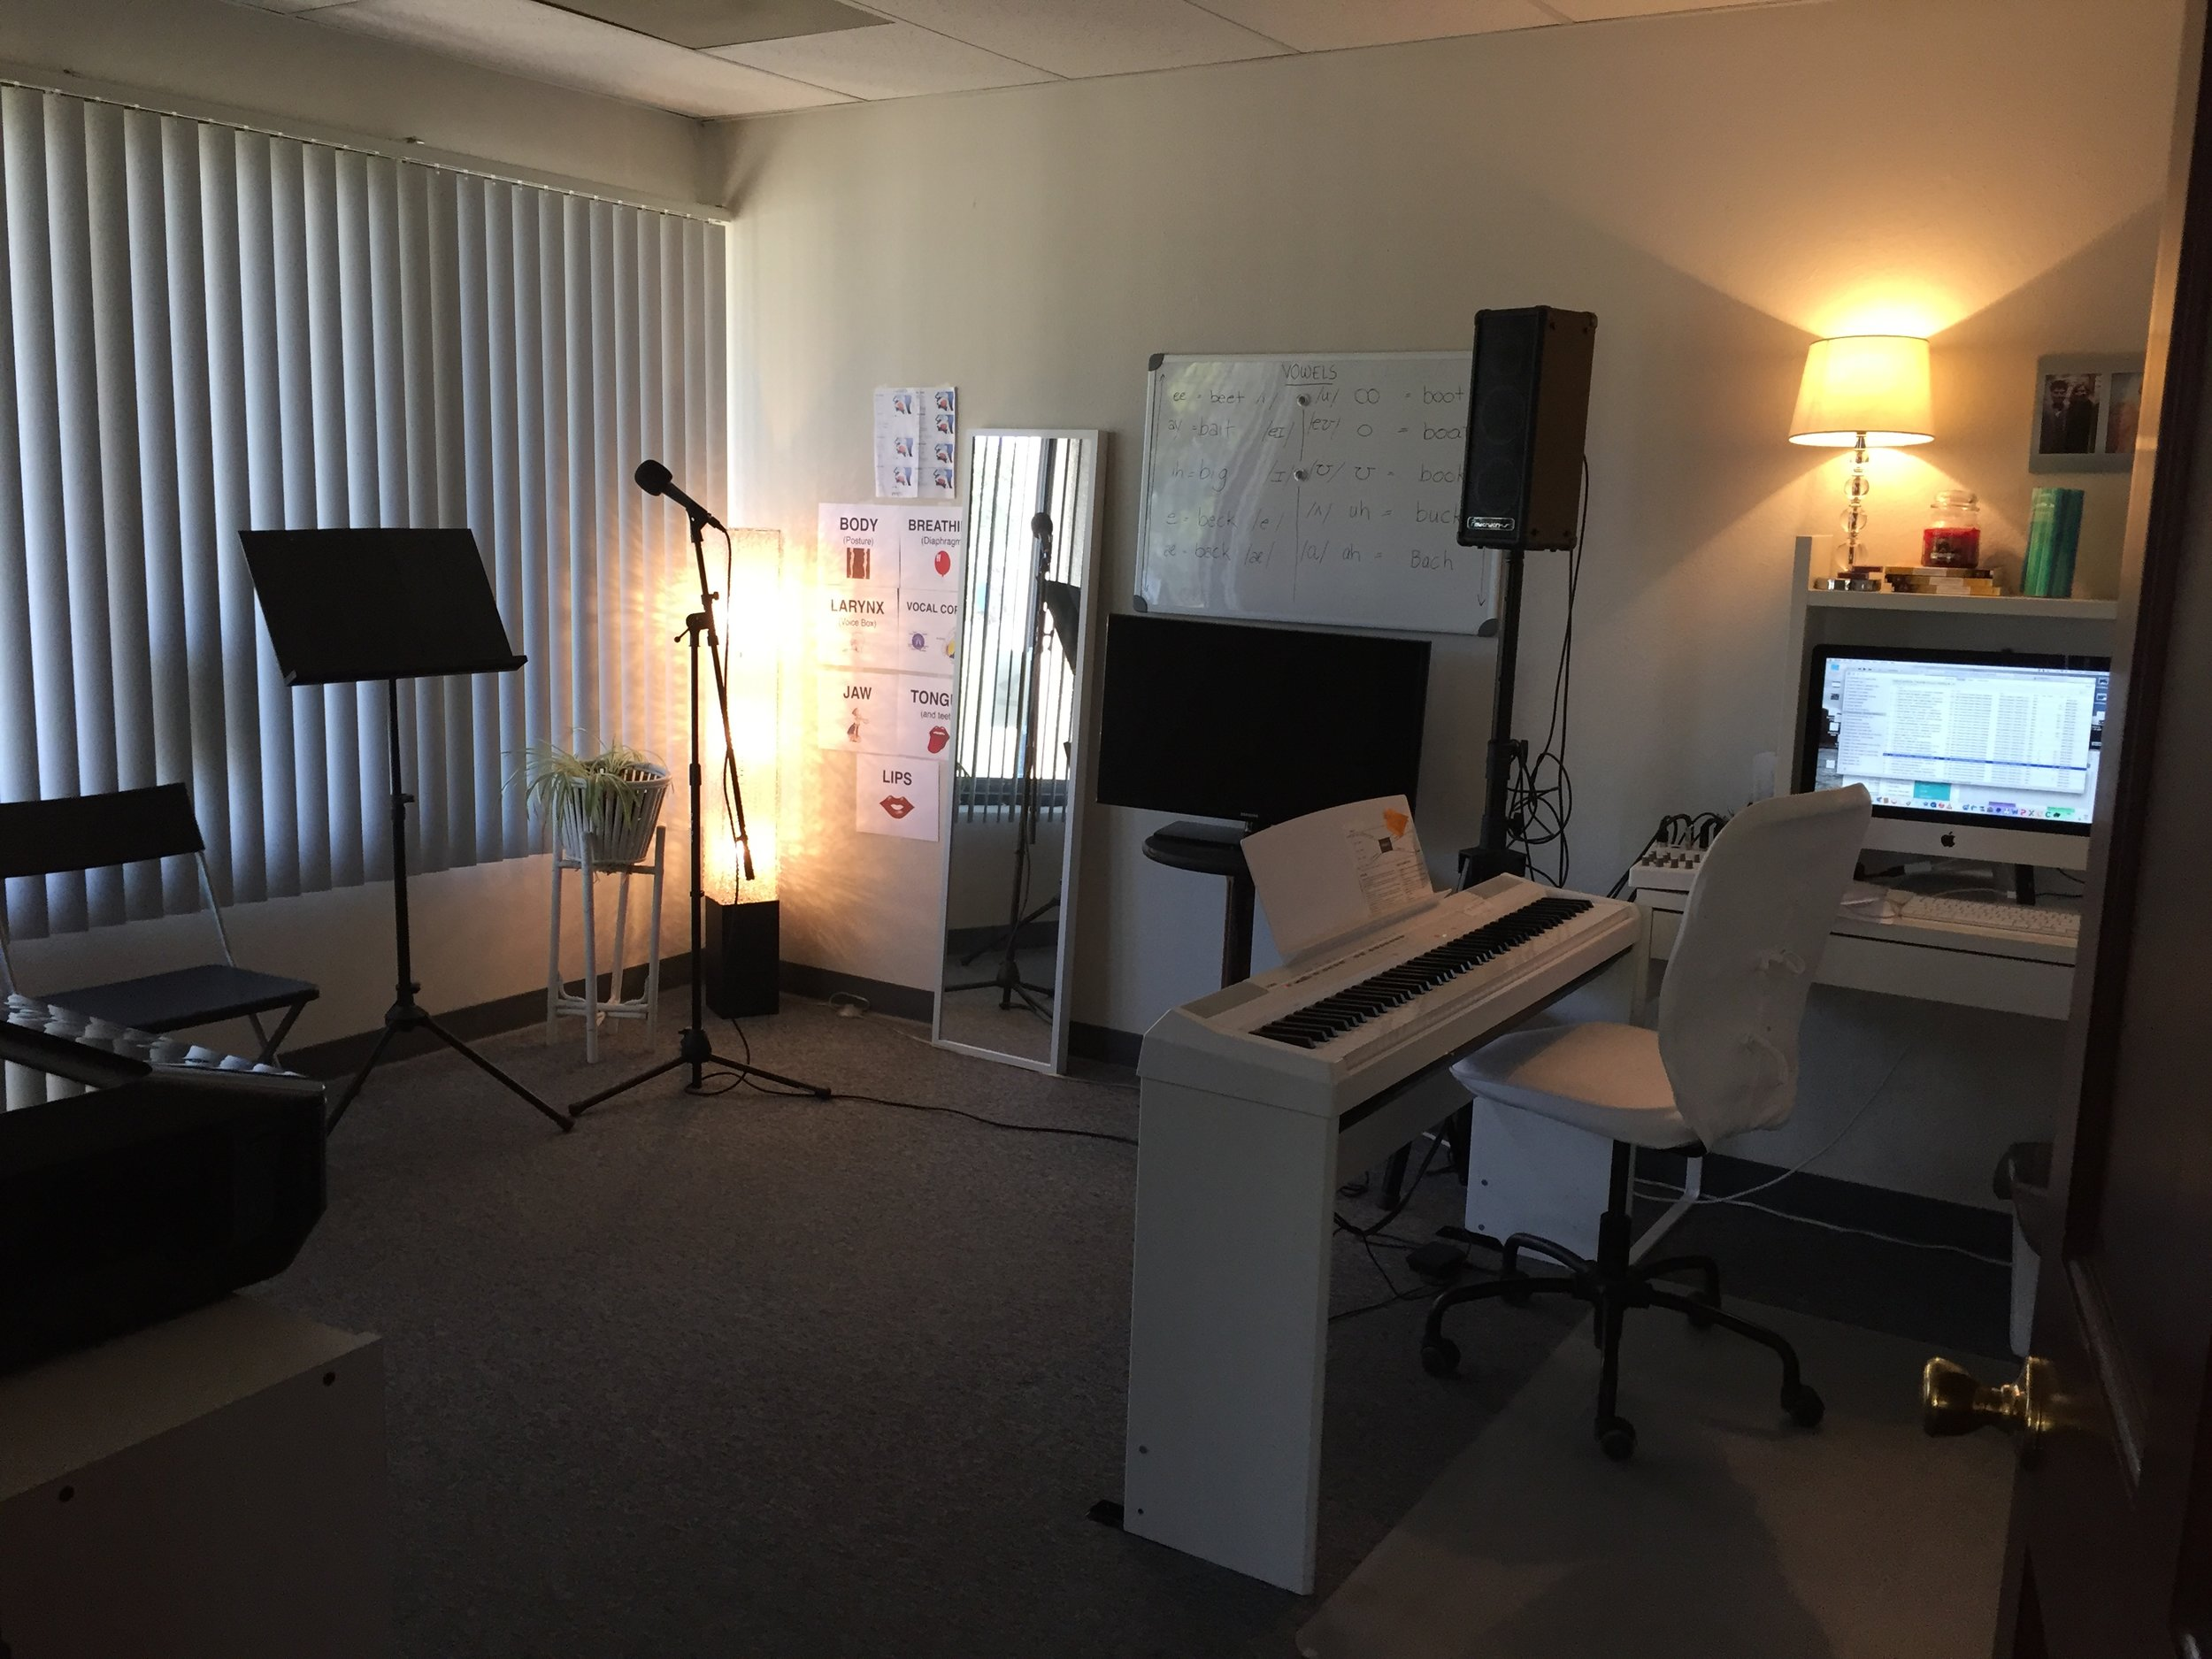 The Vocal Studi - Fully equipped with mic, speaker, keyboard and more.